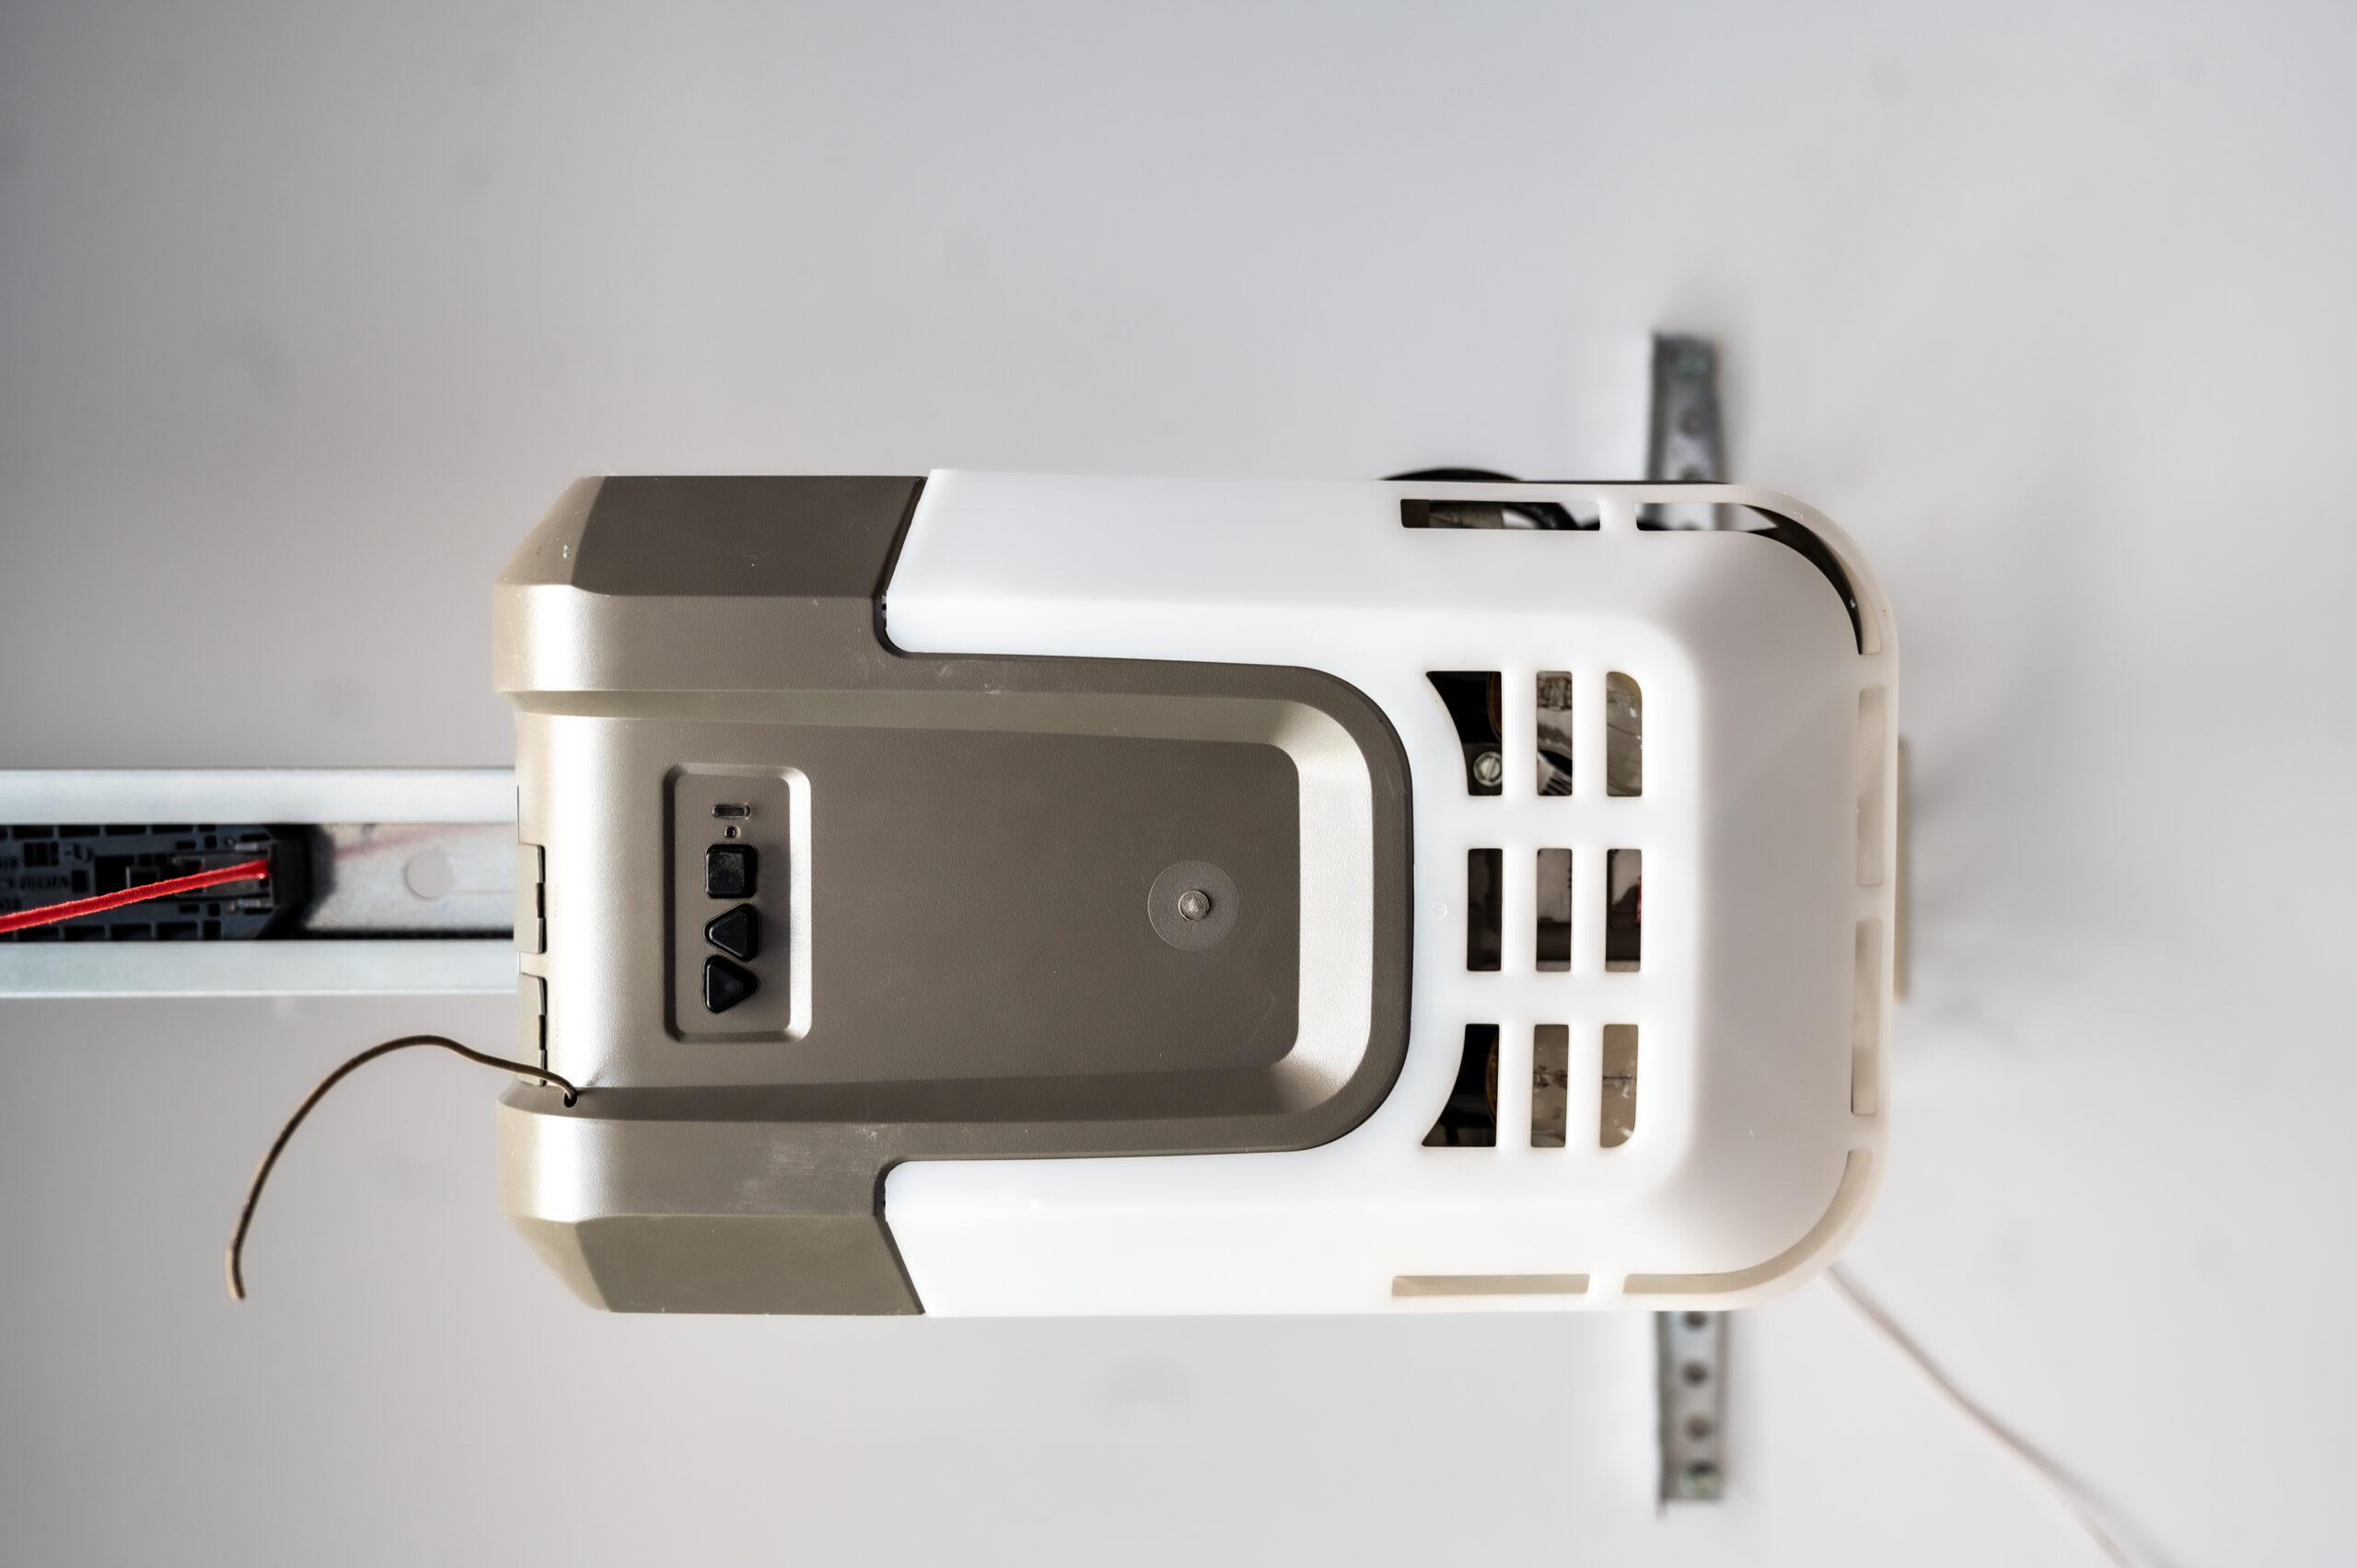 How Do You Know When To Replace Your Garage Door Opener?